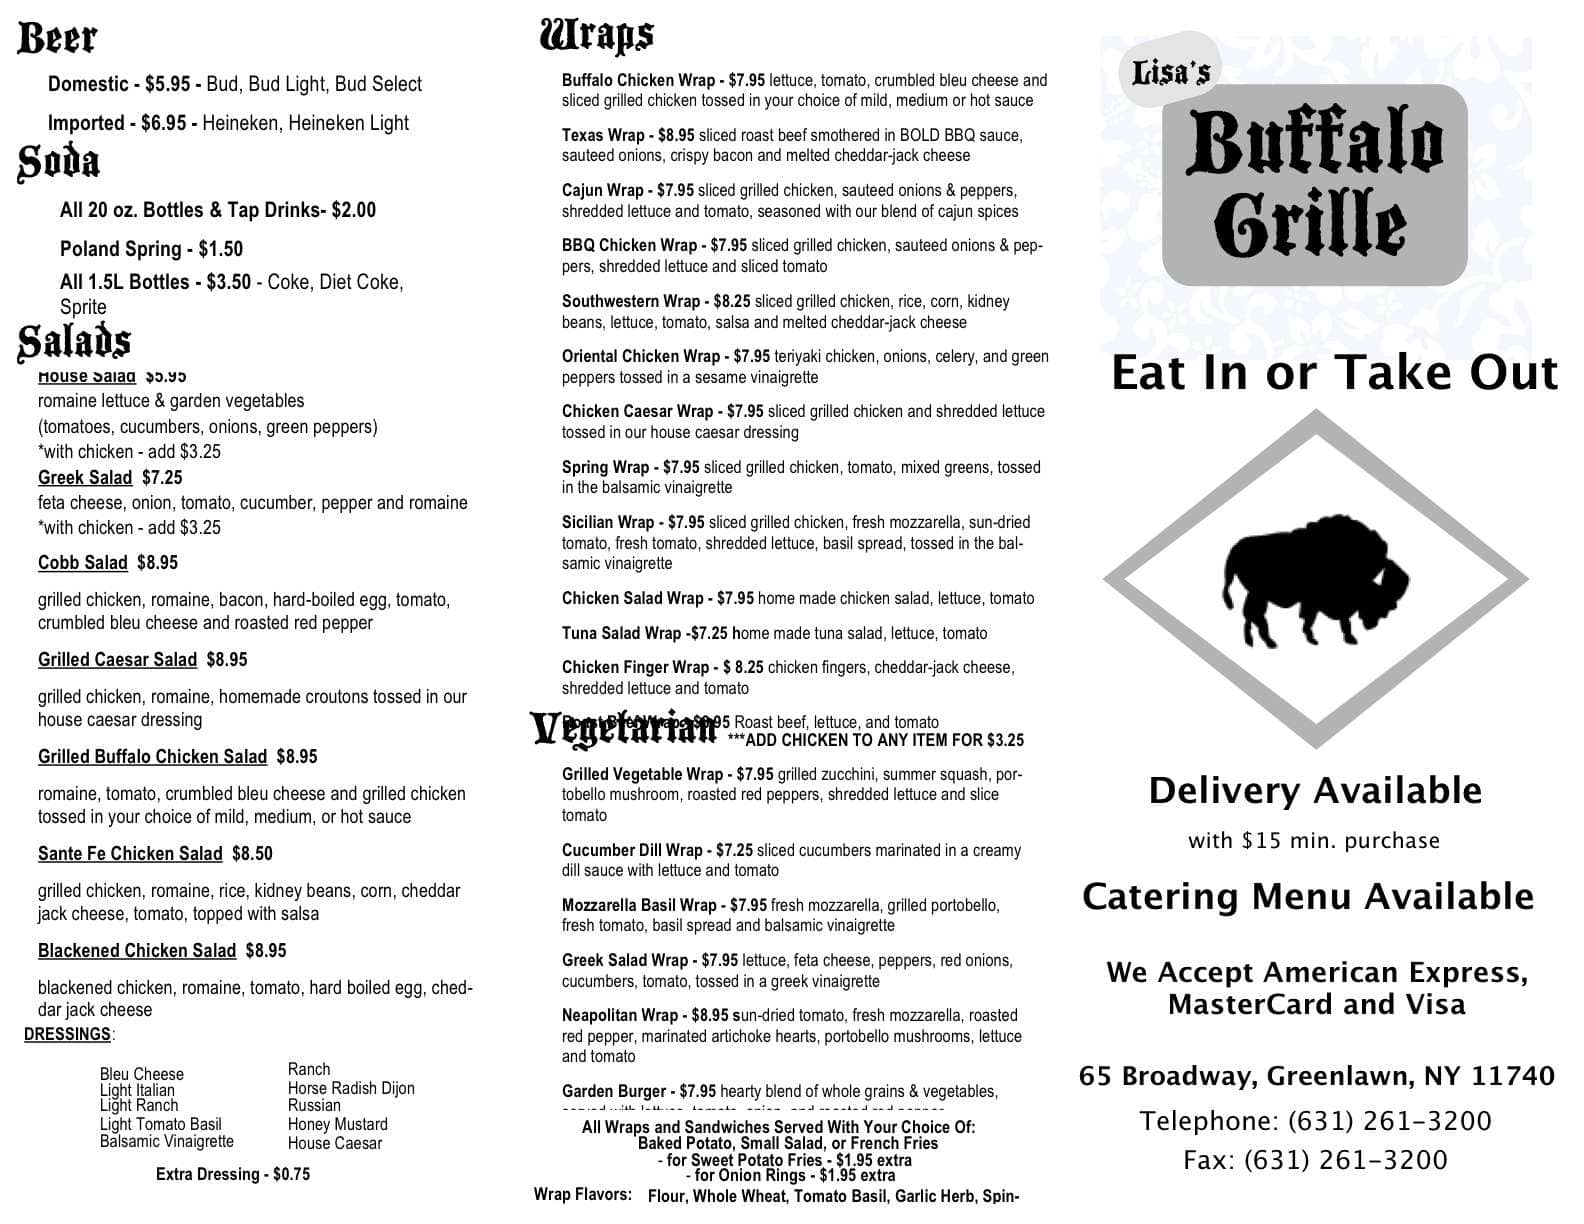 Buffalo grille llc menu menu untuk buffalo grille llc greenlawn long island urbanspoon zomato - Menu buffalo grill tarif ...